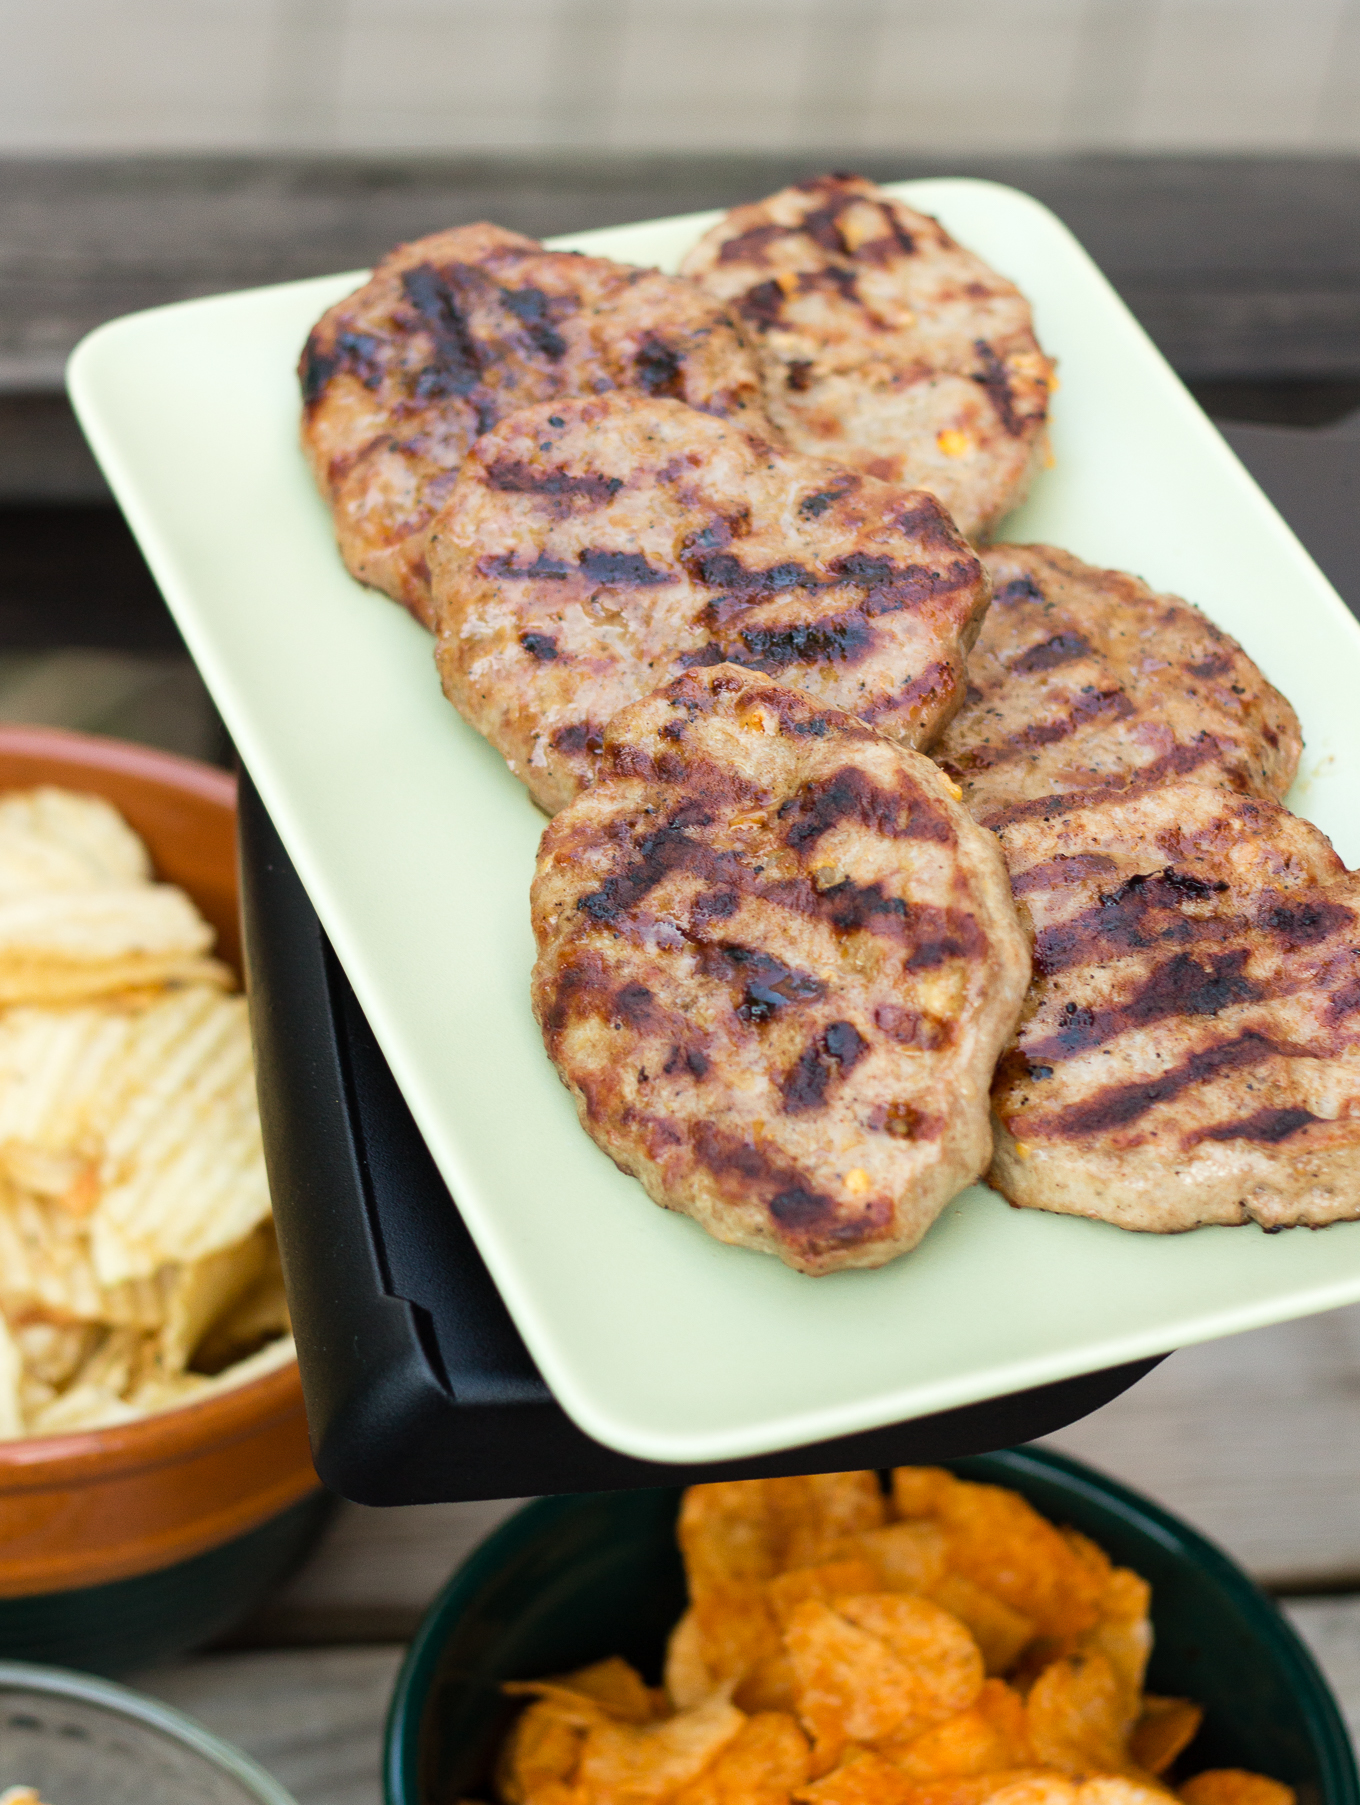 johnsonsville, johnsonville grillers, summer grilling, how to grill, social stars